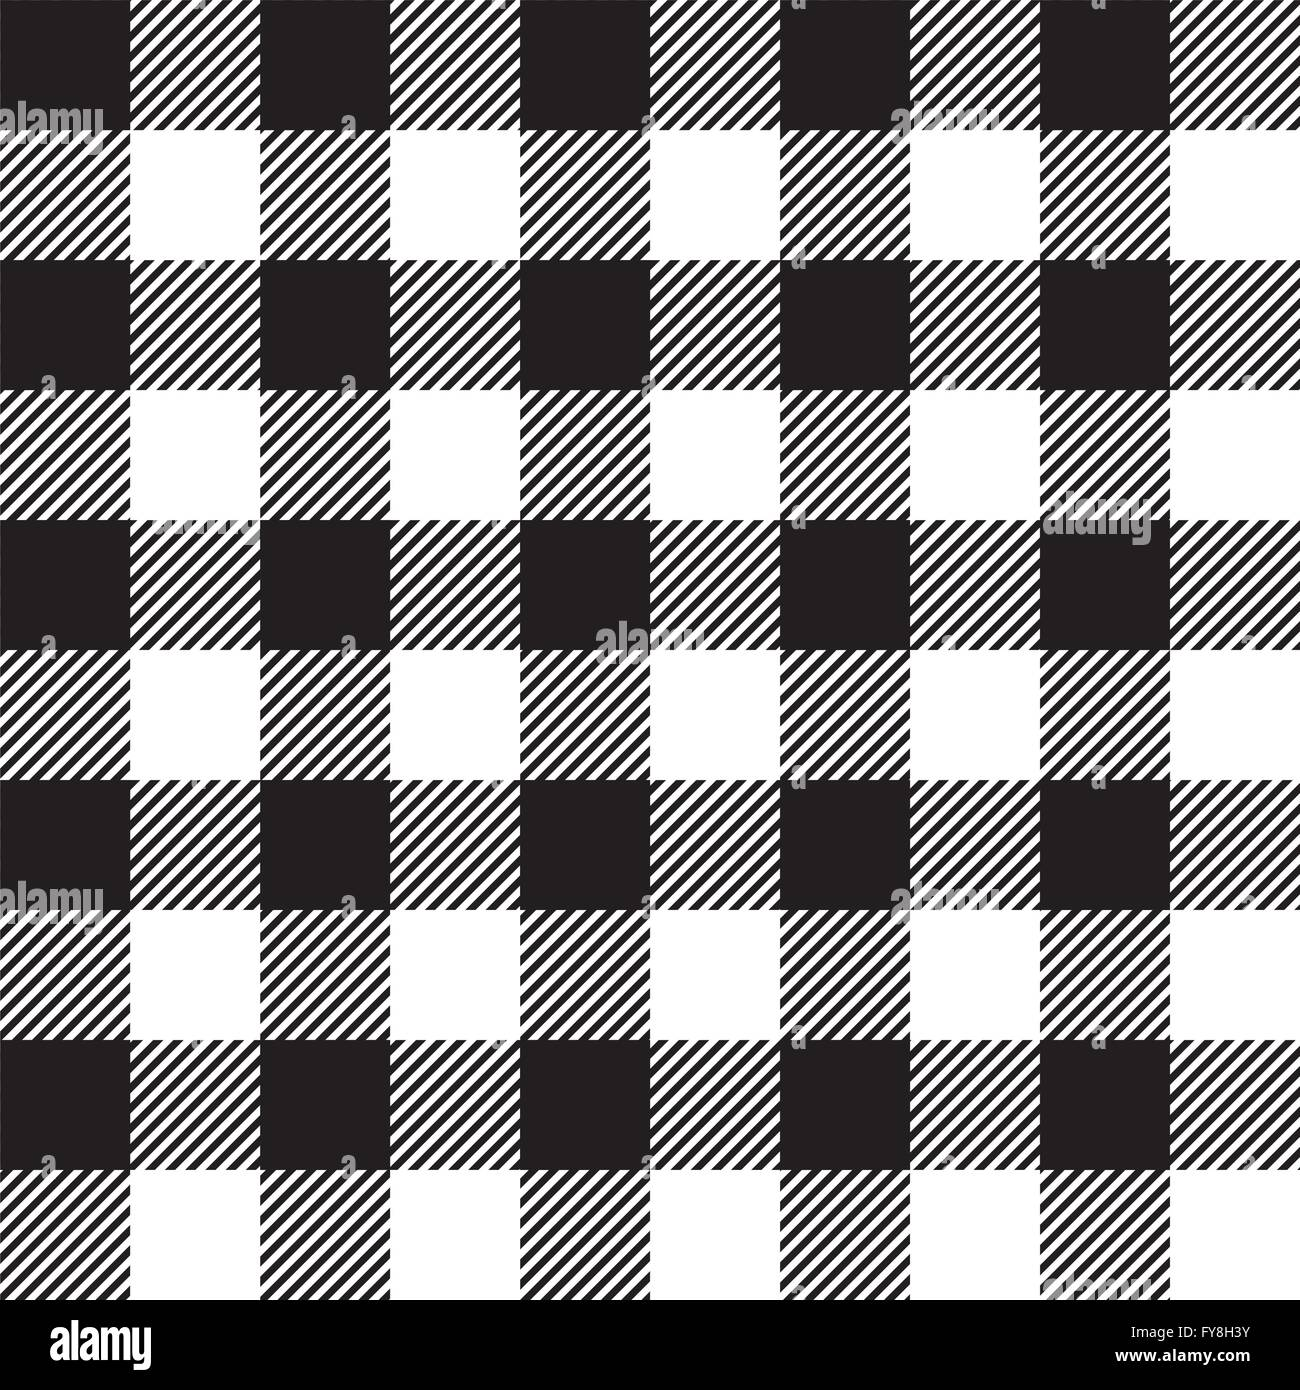 Black Tablecloth Seamless Pattern. Vector Illustration Of Traditional  Gingham Dining Cloth With Fabric Texture. Checkered Picnic